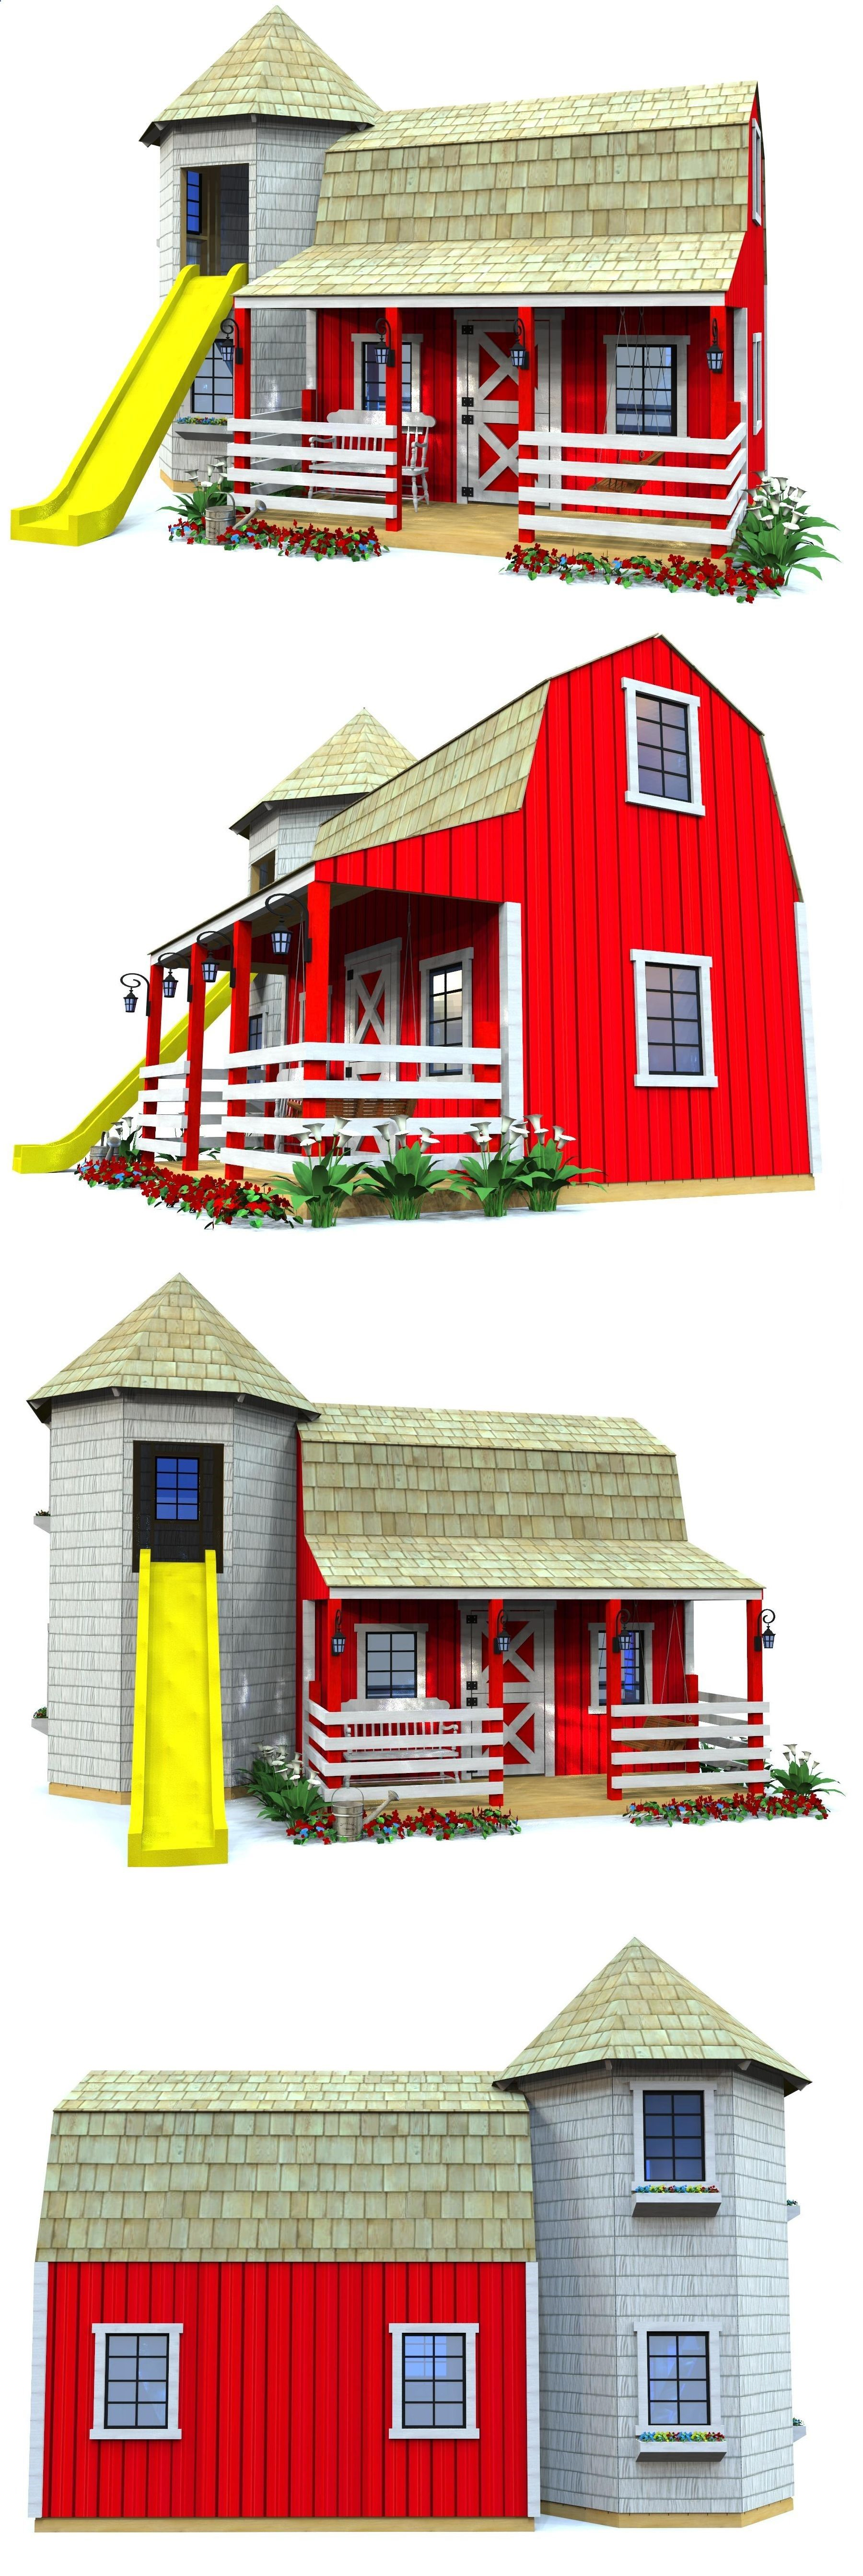 The Red Barn And Silo Playhouse Features Two Levels, Along